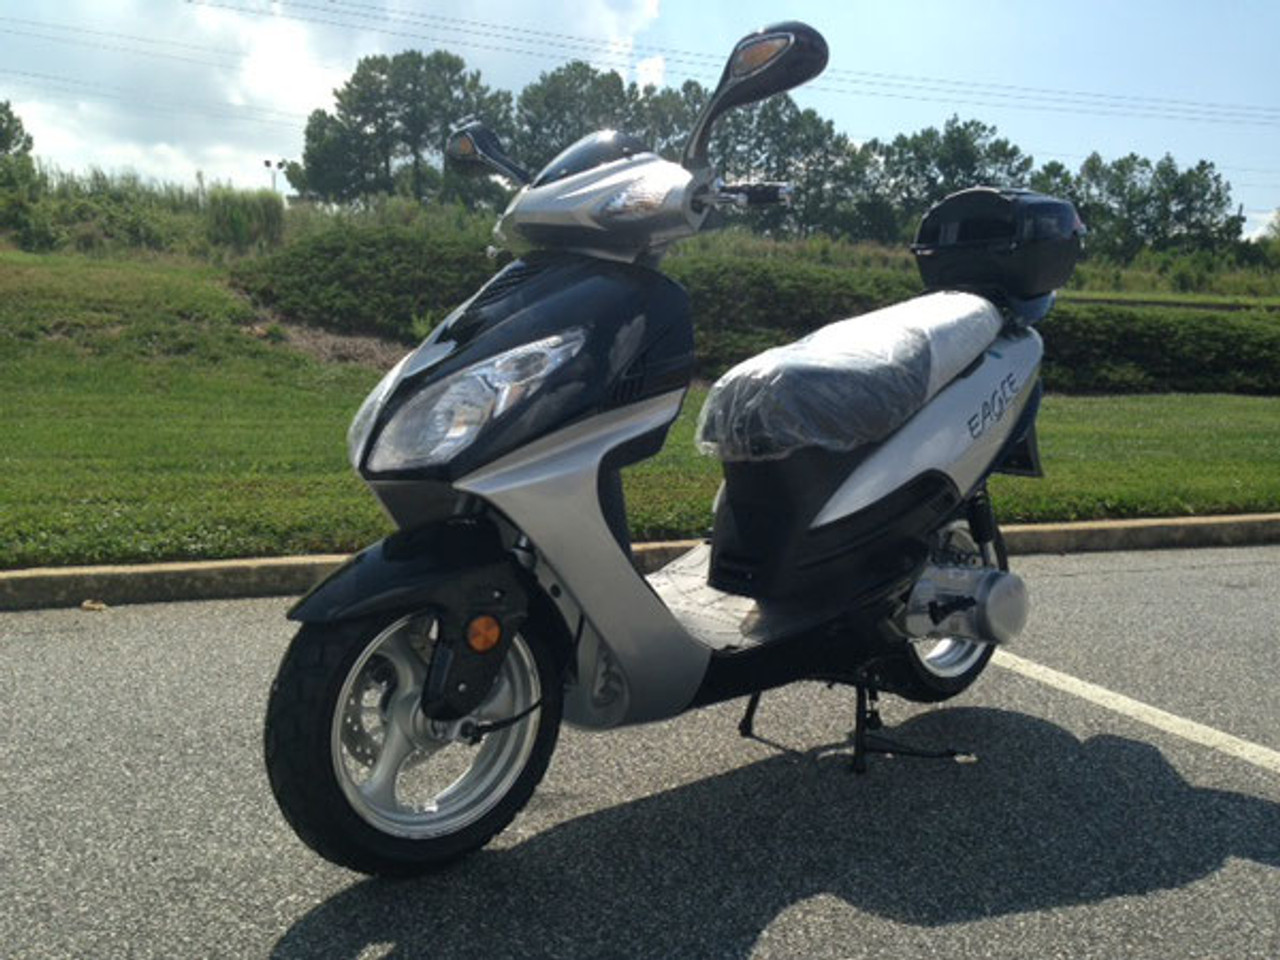 Vitacci EAGLE 150cc Scooter, 4 Stroke, Air-Forced Cool,Single Cylinder